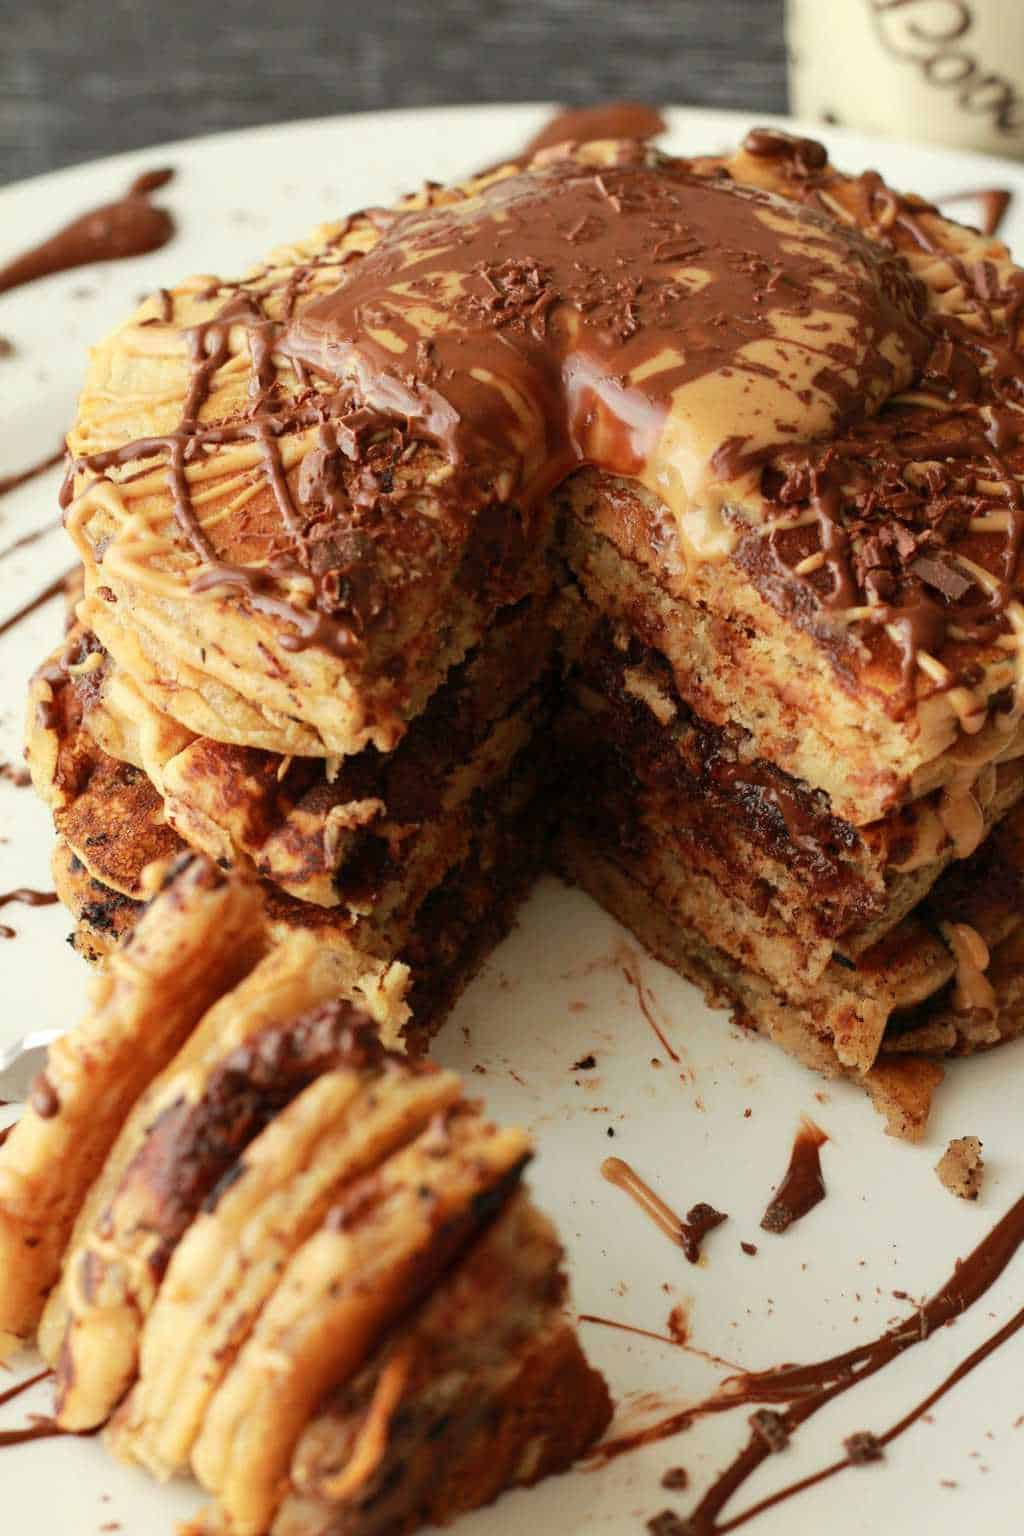 Deliciously fluffy Chocolate Chip Peanut Butter Pancakes! Perfect for a fancy vegan breakfast! Or Dessert! #vegan #lovingitvegan #dessert #pancakes #breakfast